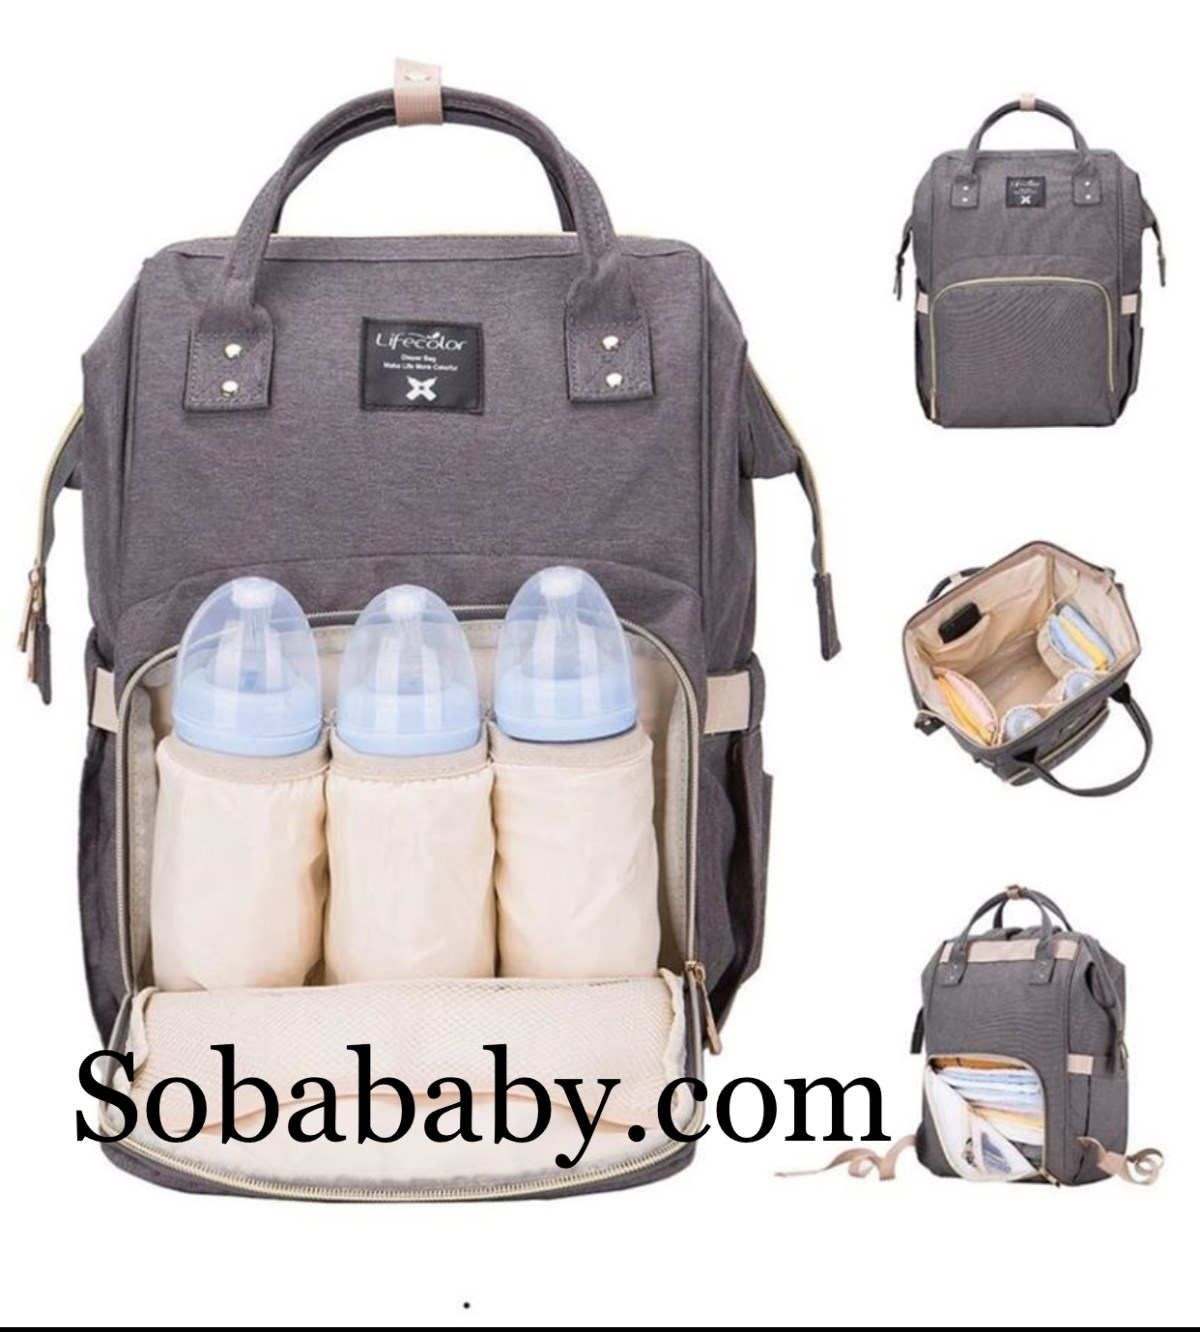 sobababy gray diaper bag